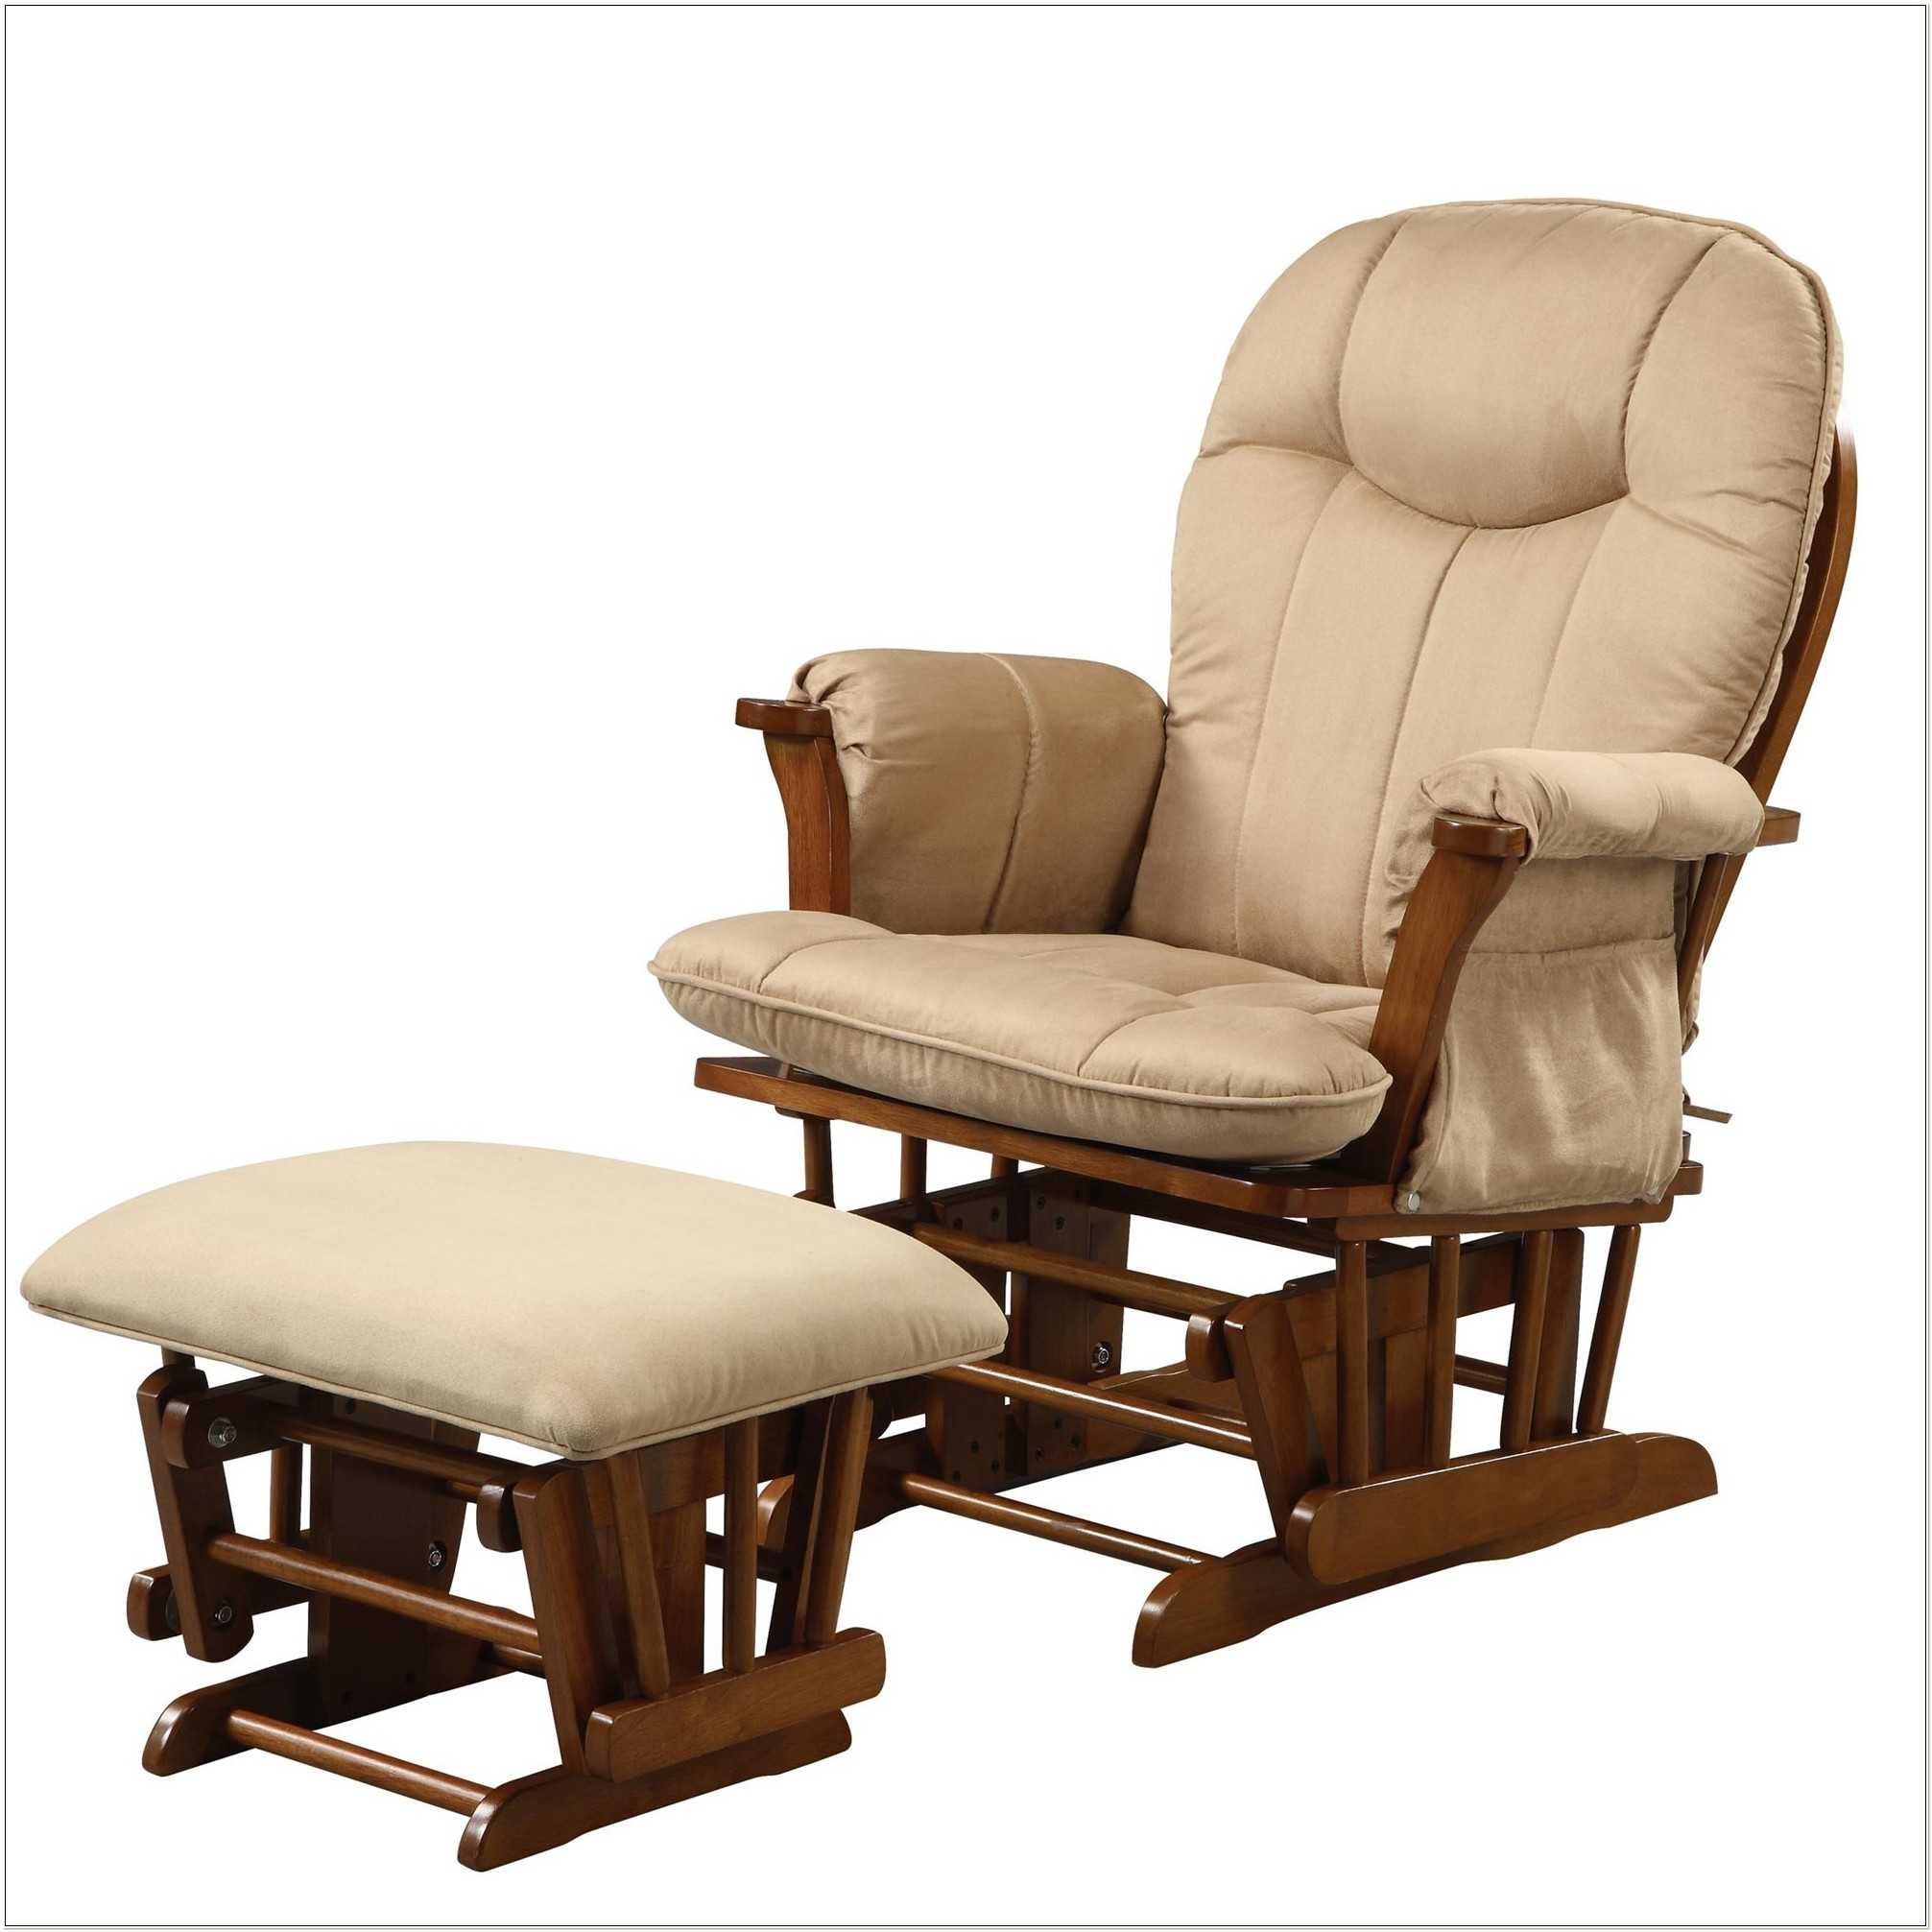 Glider Rocking Chair Ottoman Cushions